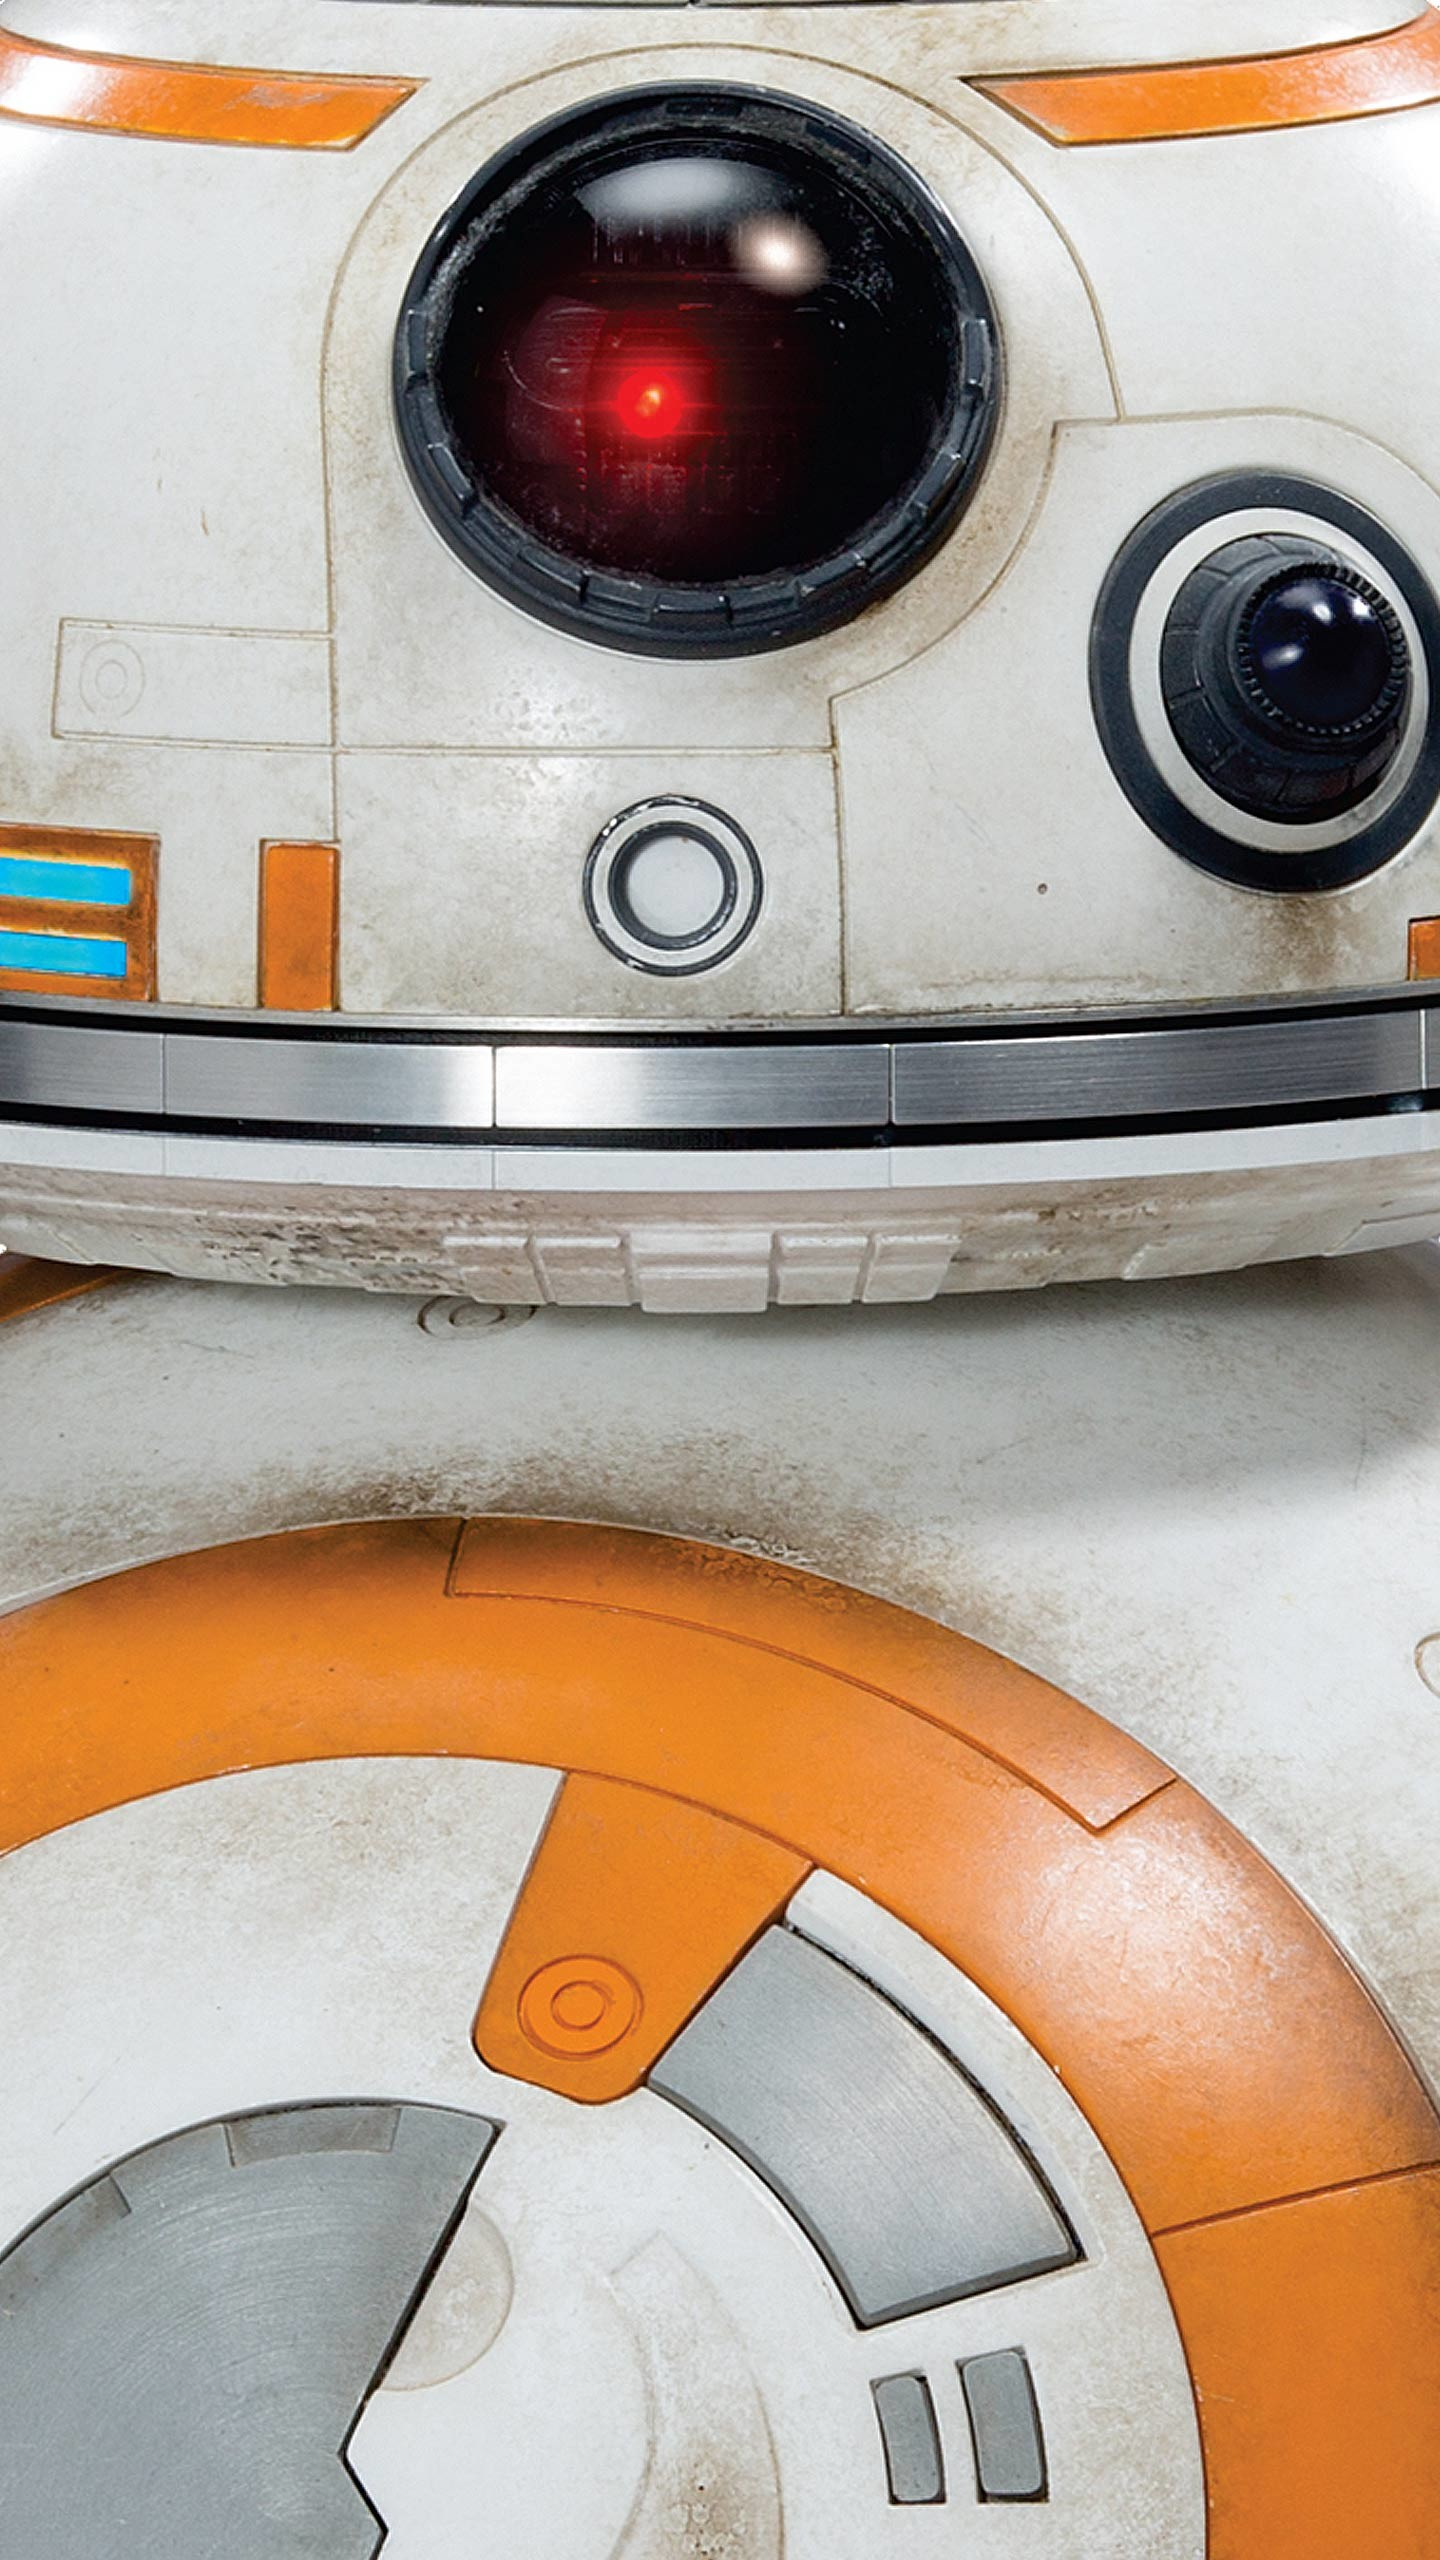 Star Wars: The Force Awakens wallpapers for your iPhone 6s and Galaxy S6